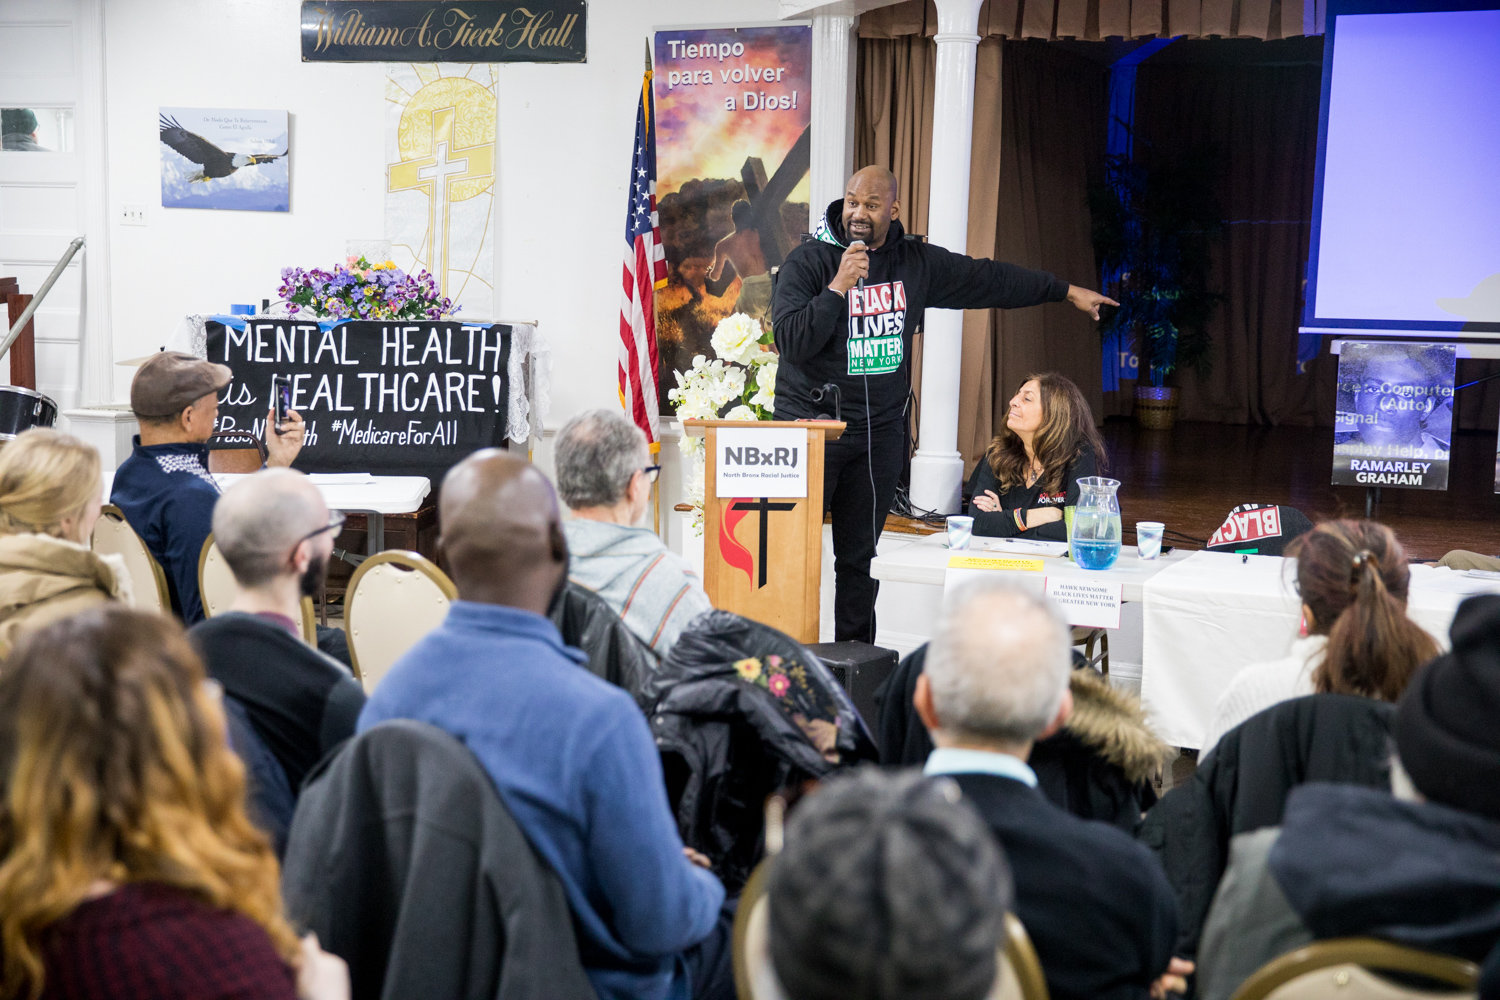 Black Lives Matter of Greater New York president Hawk Newsome speaks at a panel discussion on mental health and police activity in communities of color at St. Stephen's United Methodist Church on Martin Luther King Jr. Day.